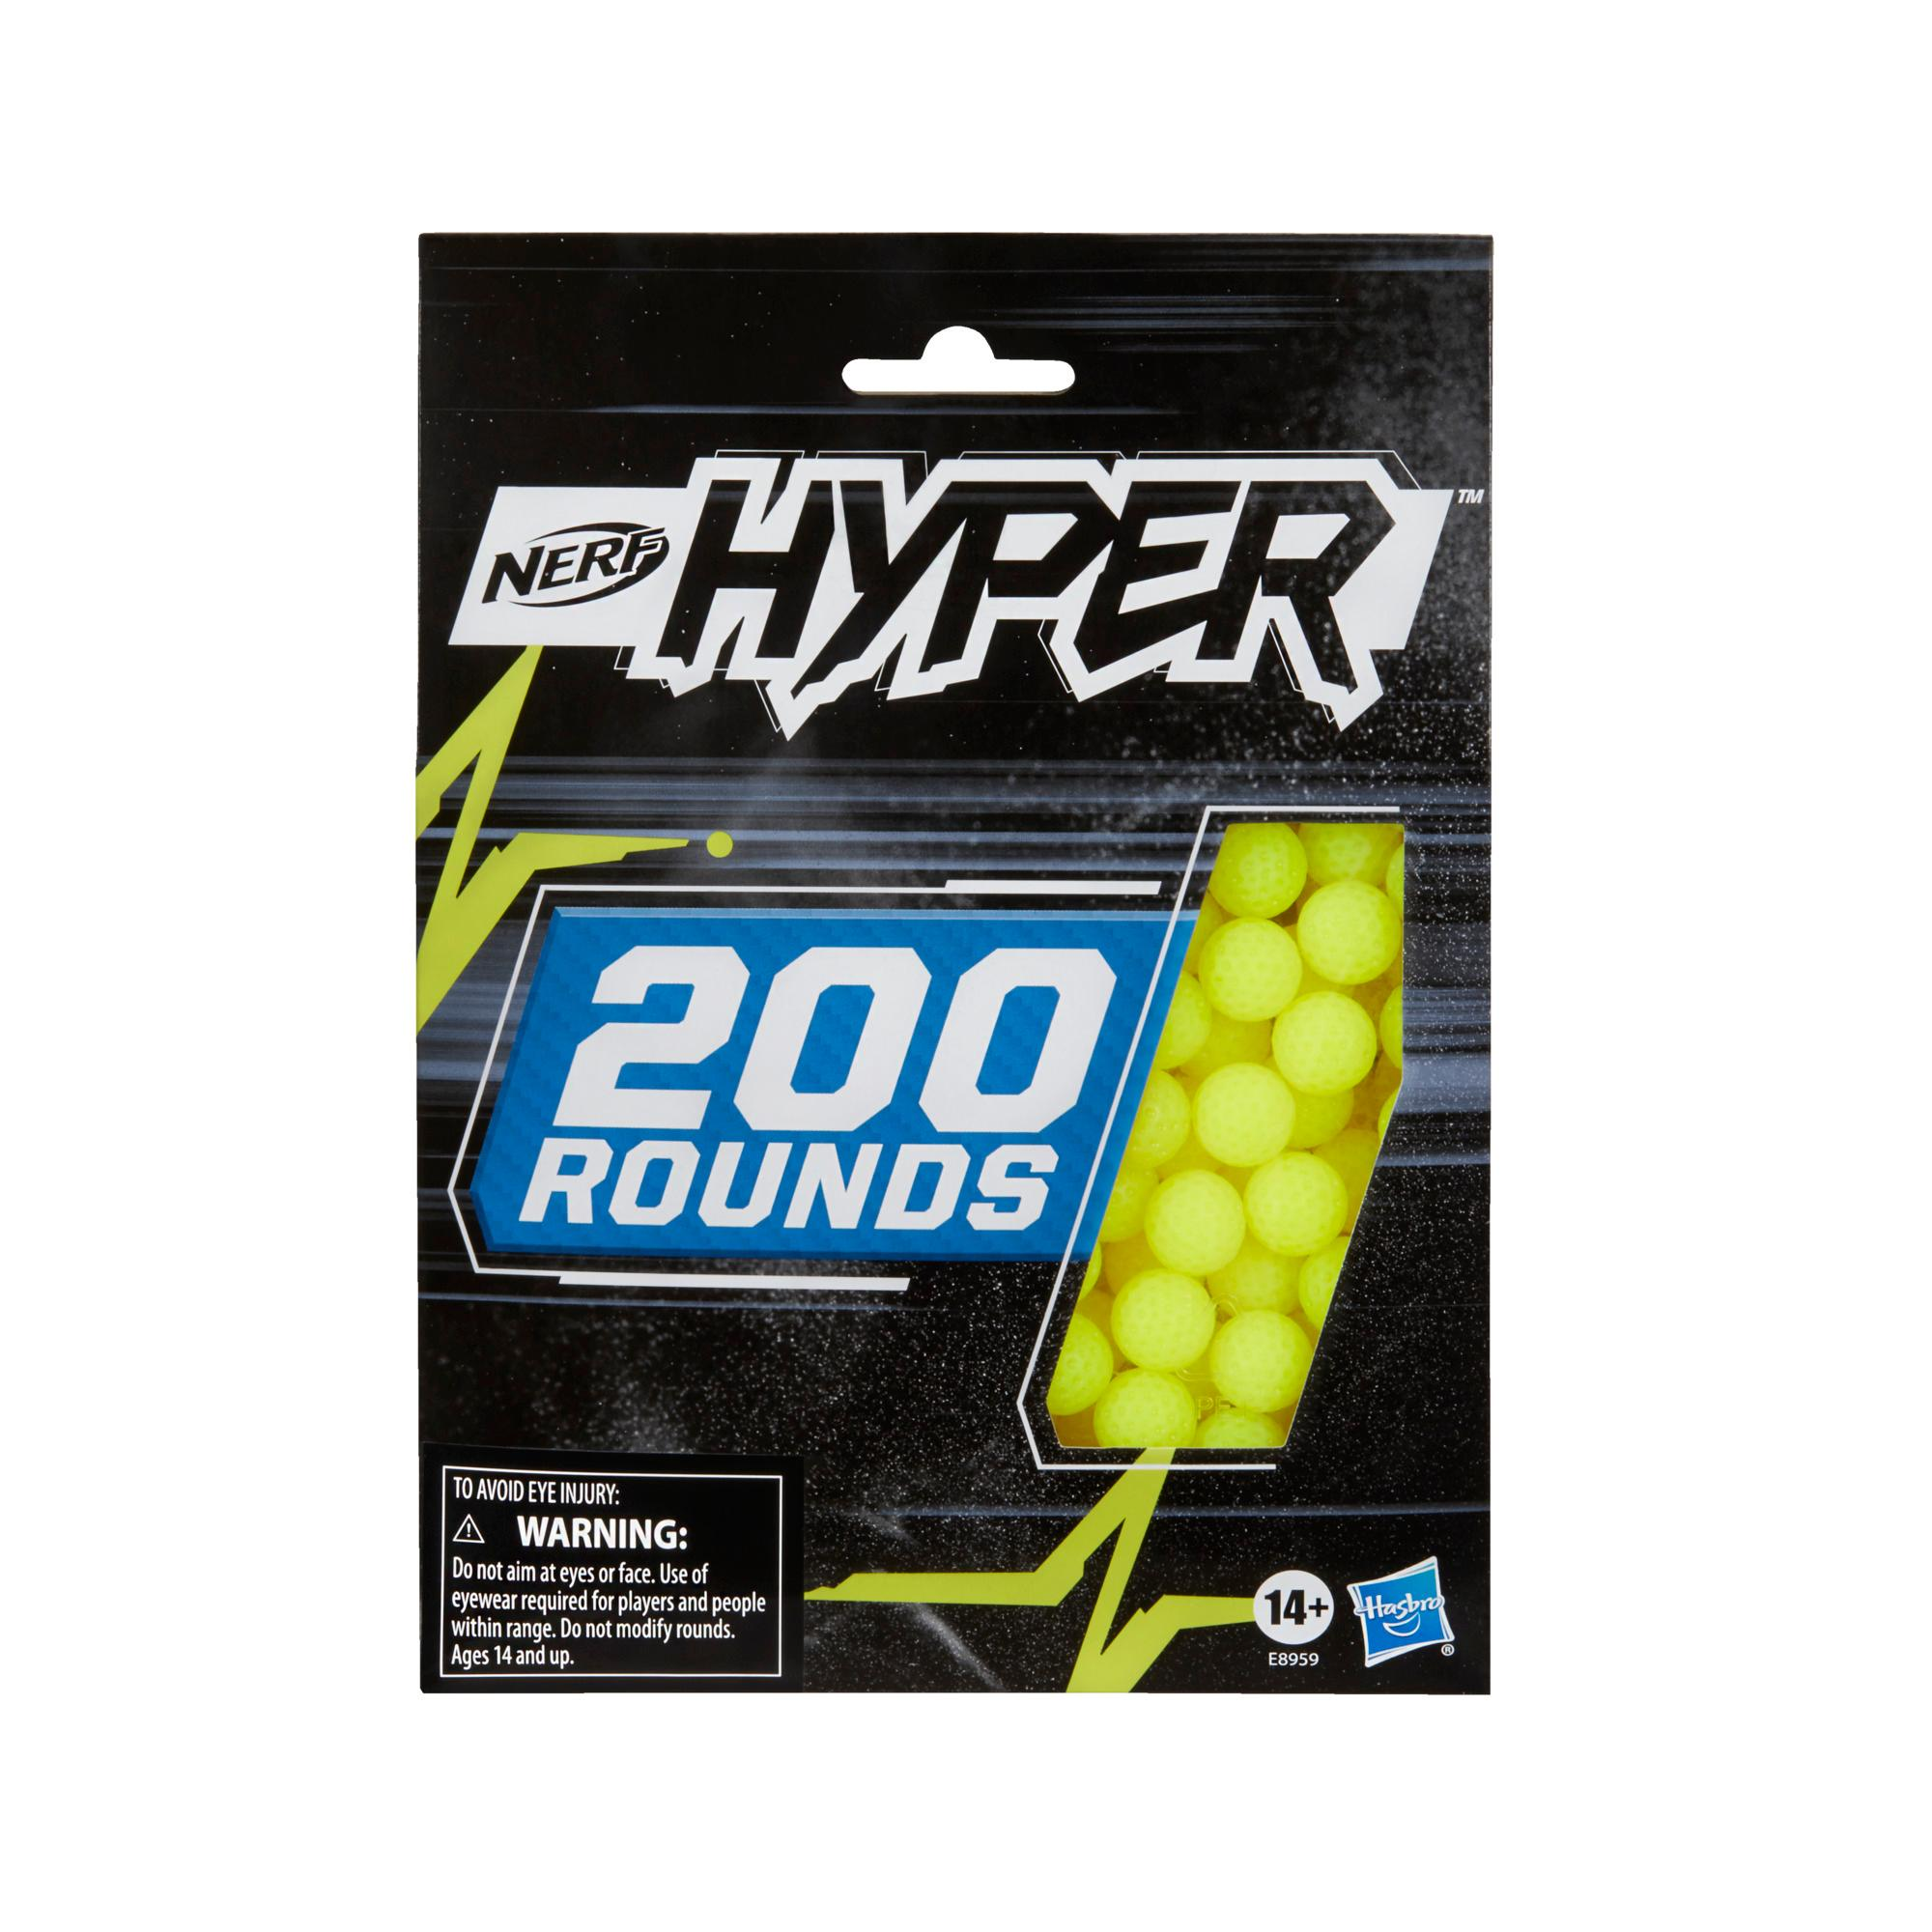 Nerf Hyper 200-Round Refill -- Includes Pack of 200 Official Nerf Hyper Rounds -- For Use with Nerf Hyper Blasters